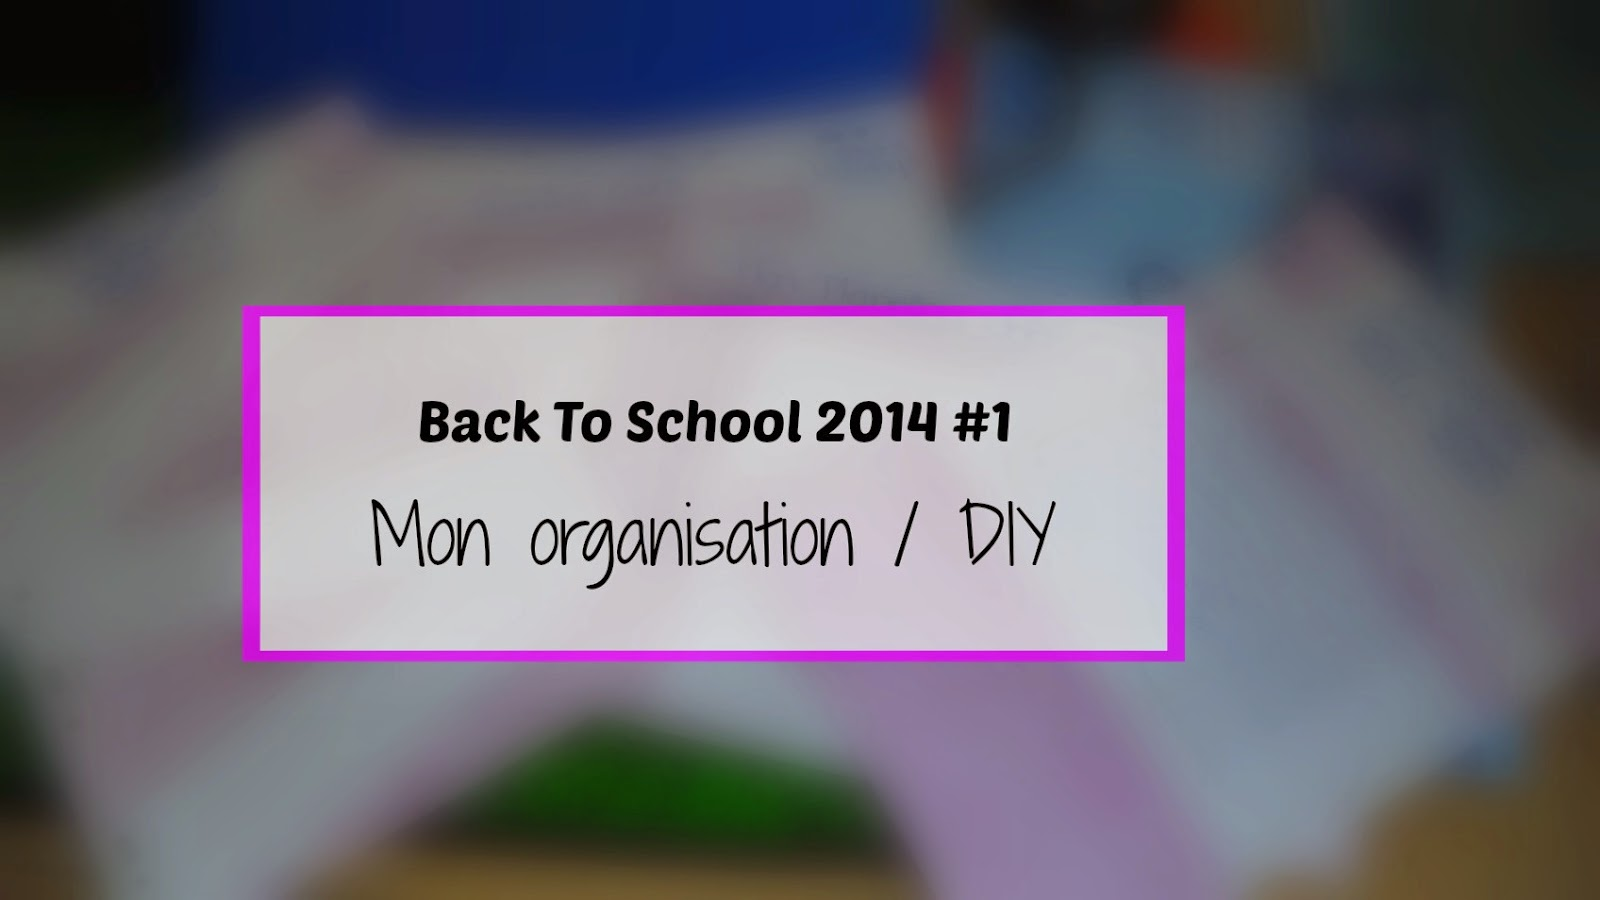 http://africastyle-bykennedy.blogspot.fr/2014/08/back-to-school-2014-1-mon-organisation.html